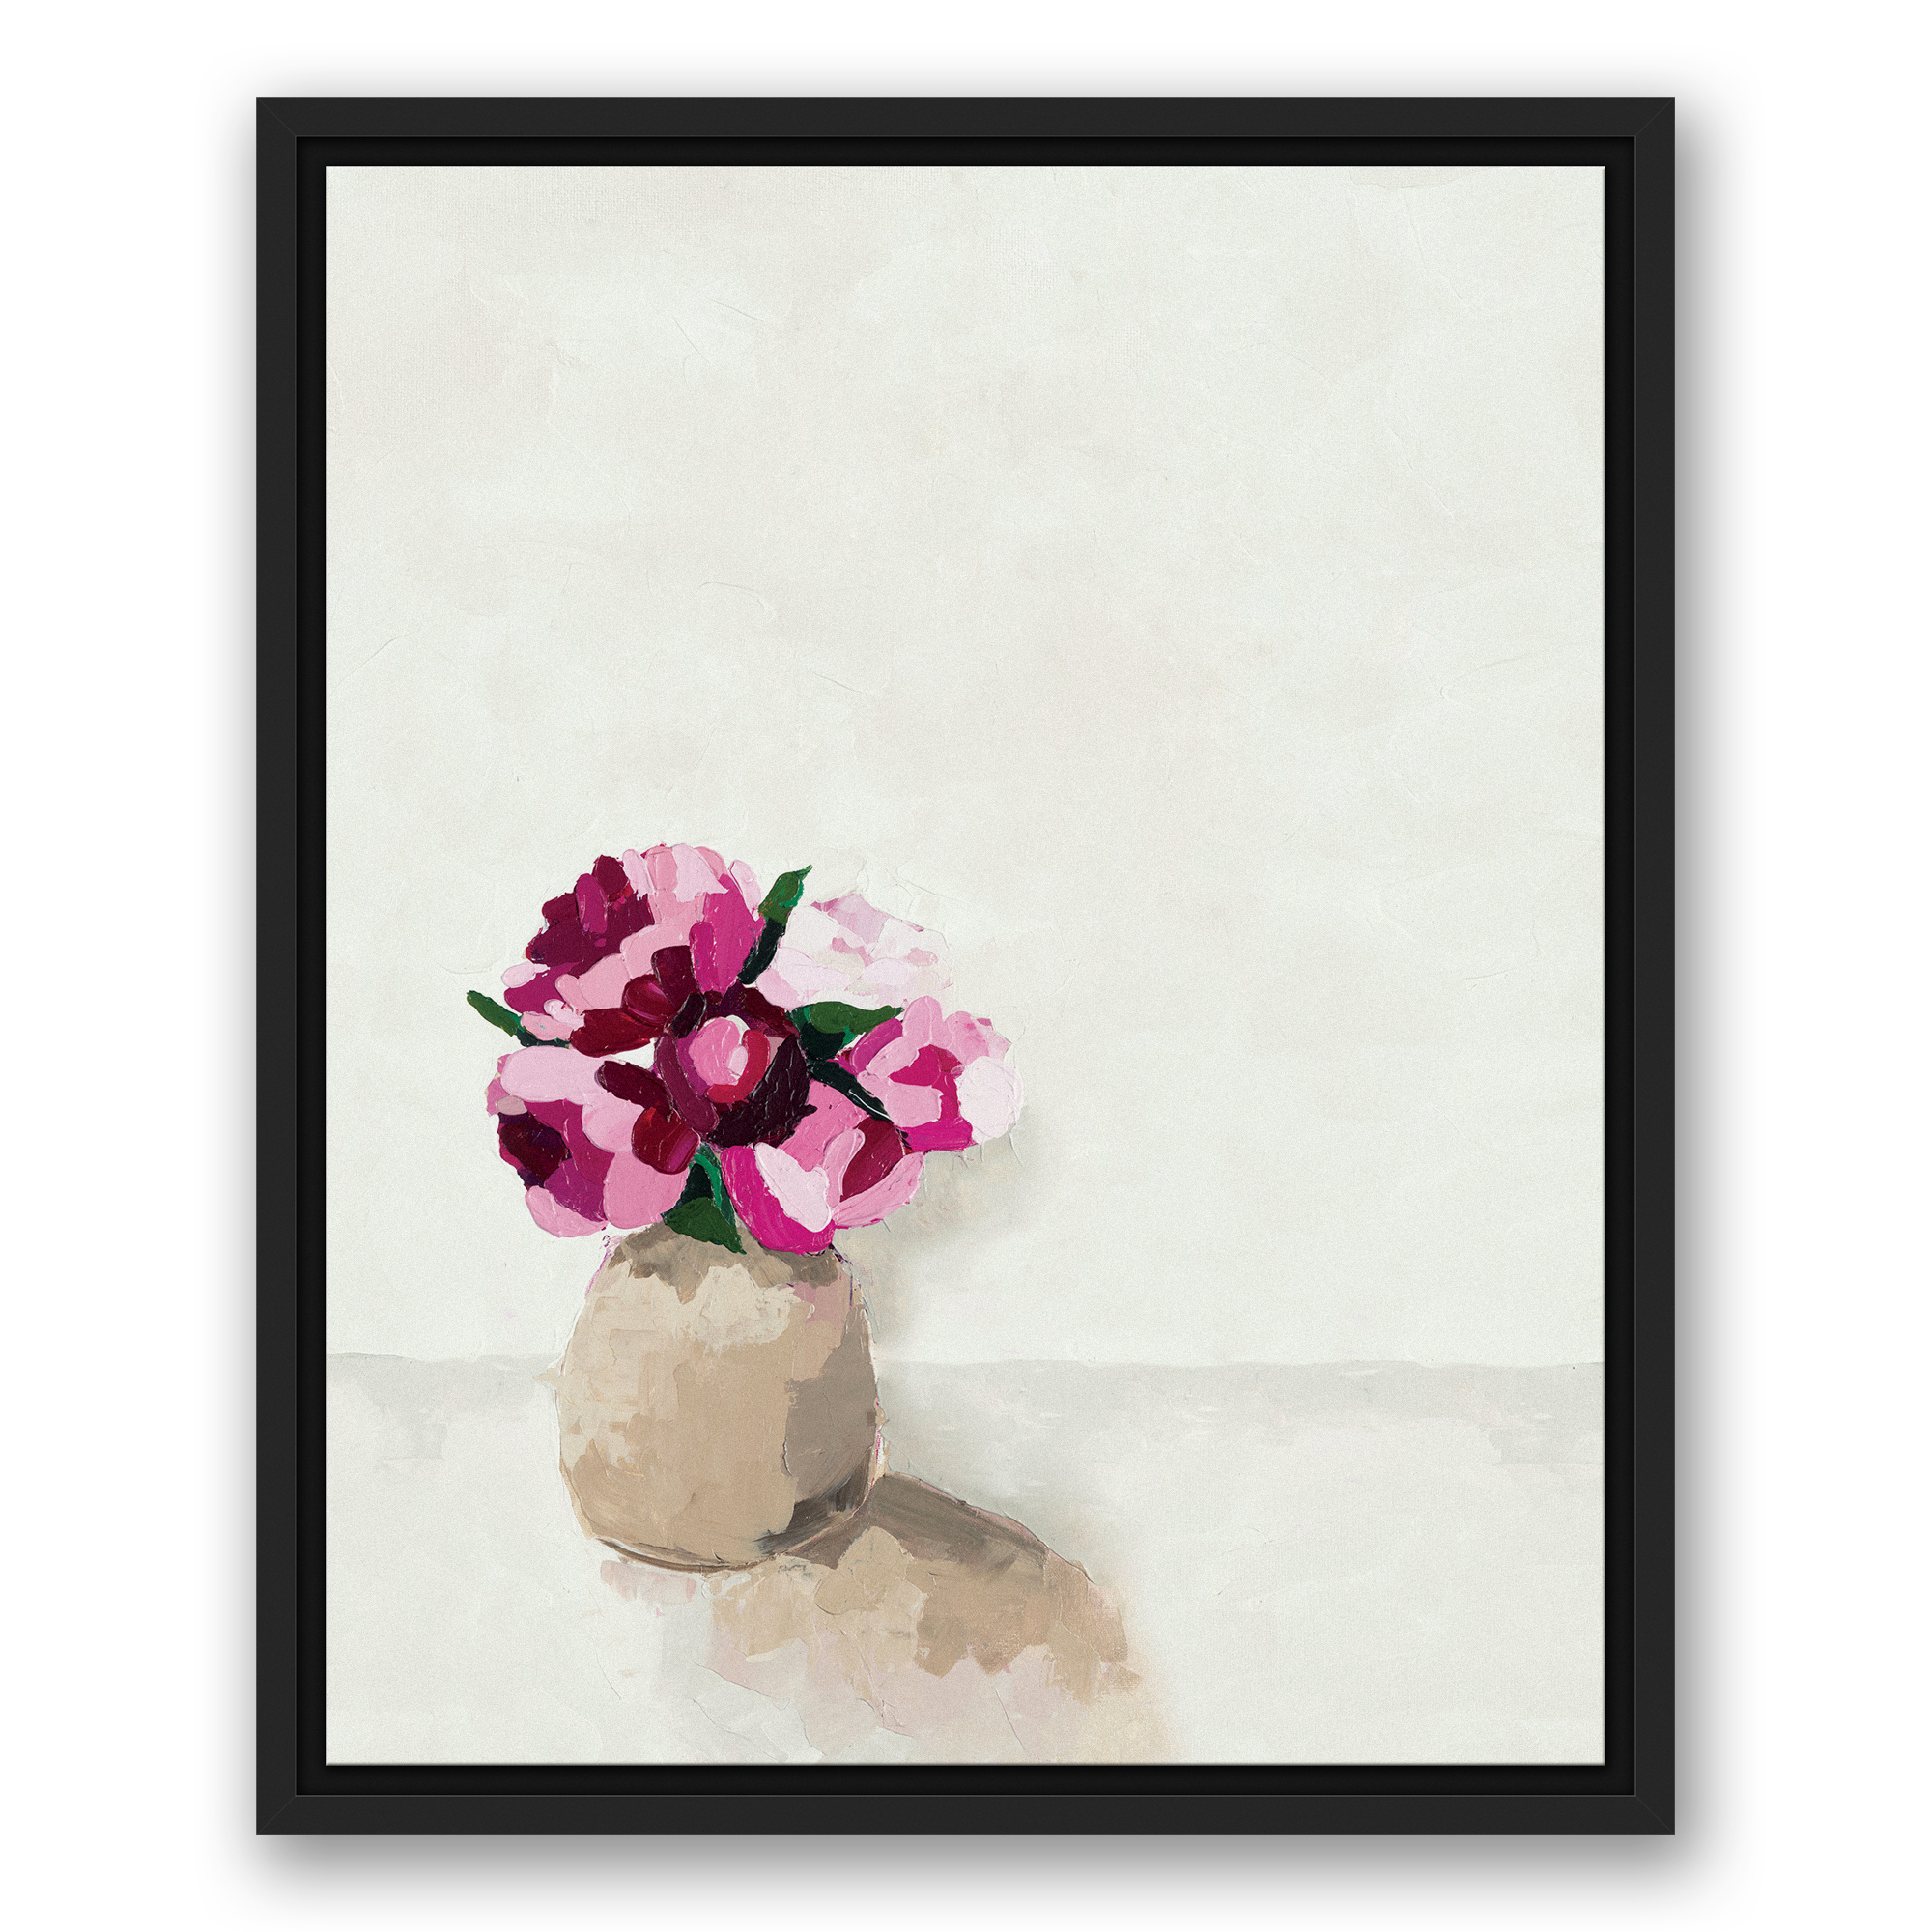 Wrought Studio 'pink Flowers In A Vase' Framed Print On Canvas Throughout Latest 3 Piece Wall Decor Sets By Wrought Studio (View 20 of 20)